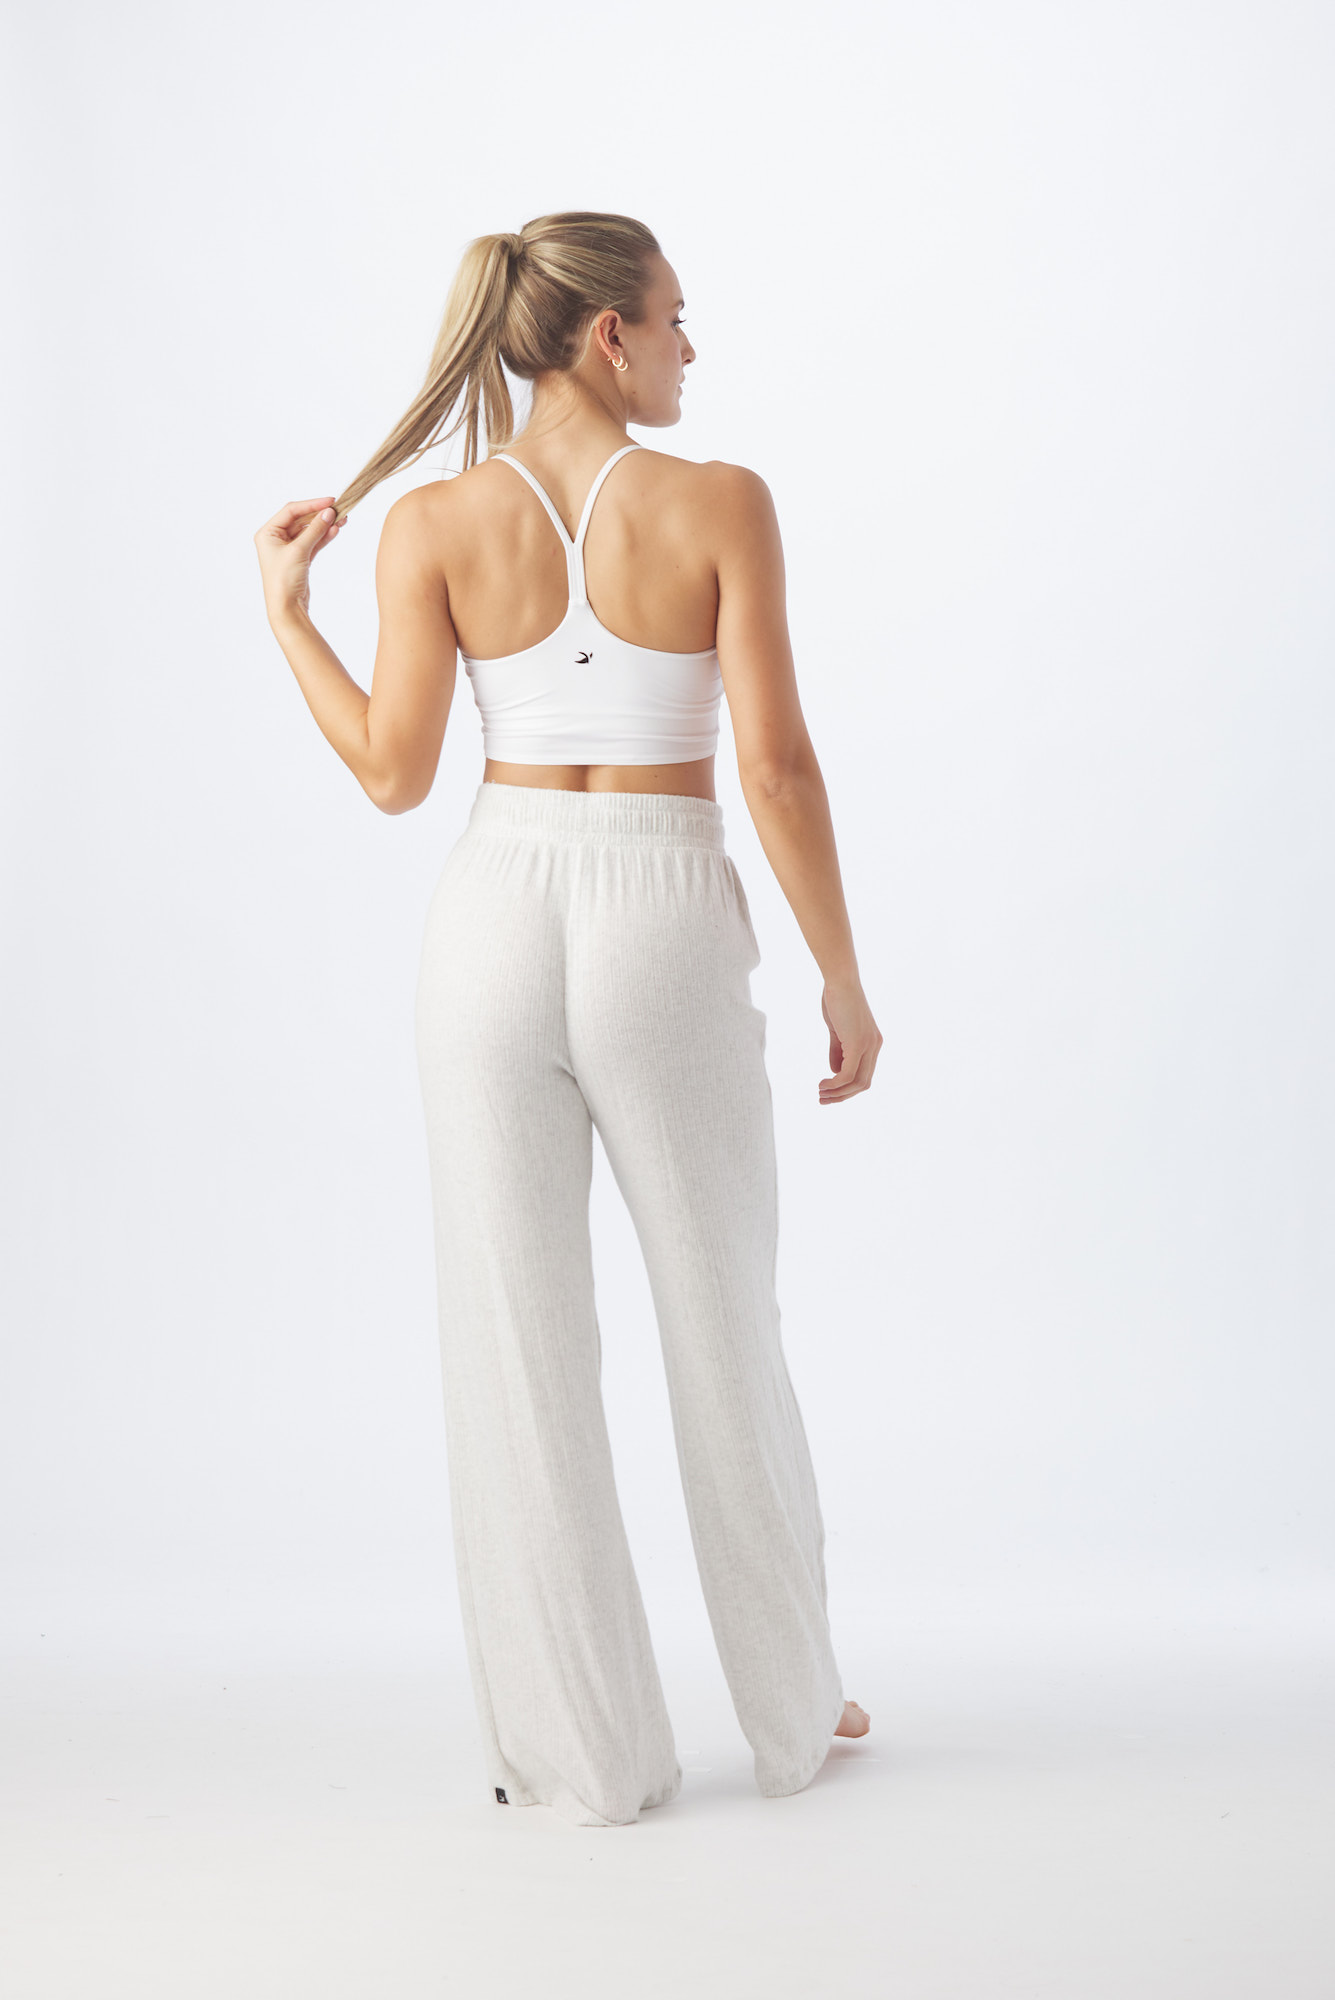 GLYDER-active-workout-Model-Onmodel-in-studio-instudio-Damion-Lloyd-Photography-Commercial-Product-Apparel-Clothing-Los-Angeles-Orange-County-female-woman-white-pants